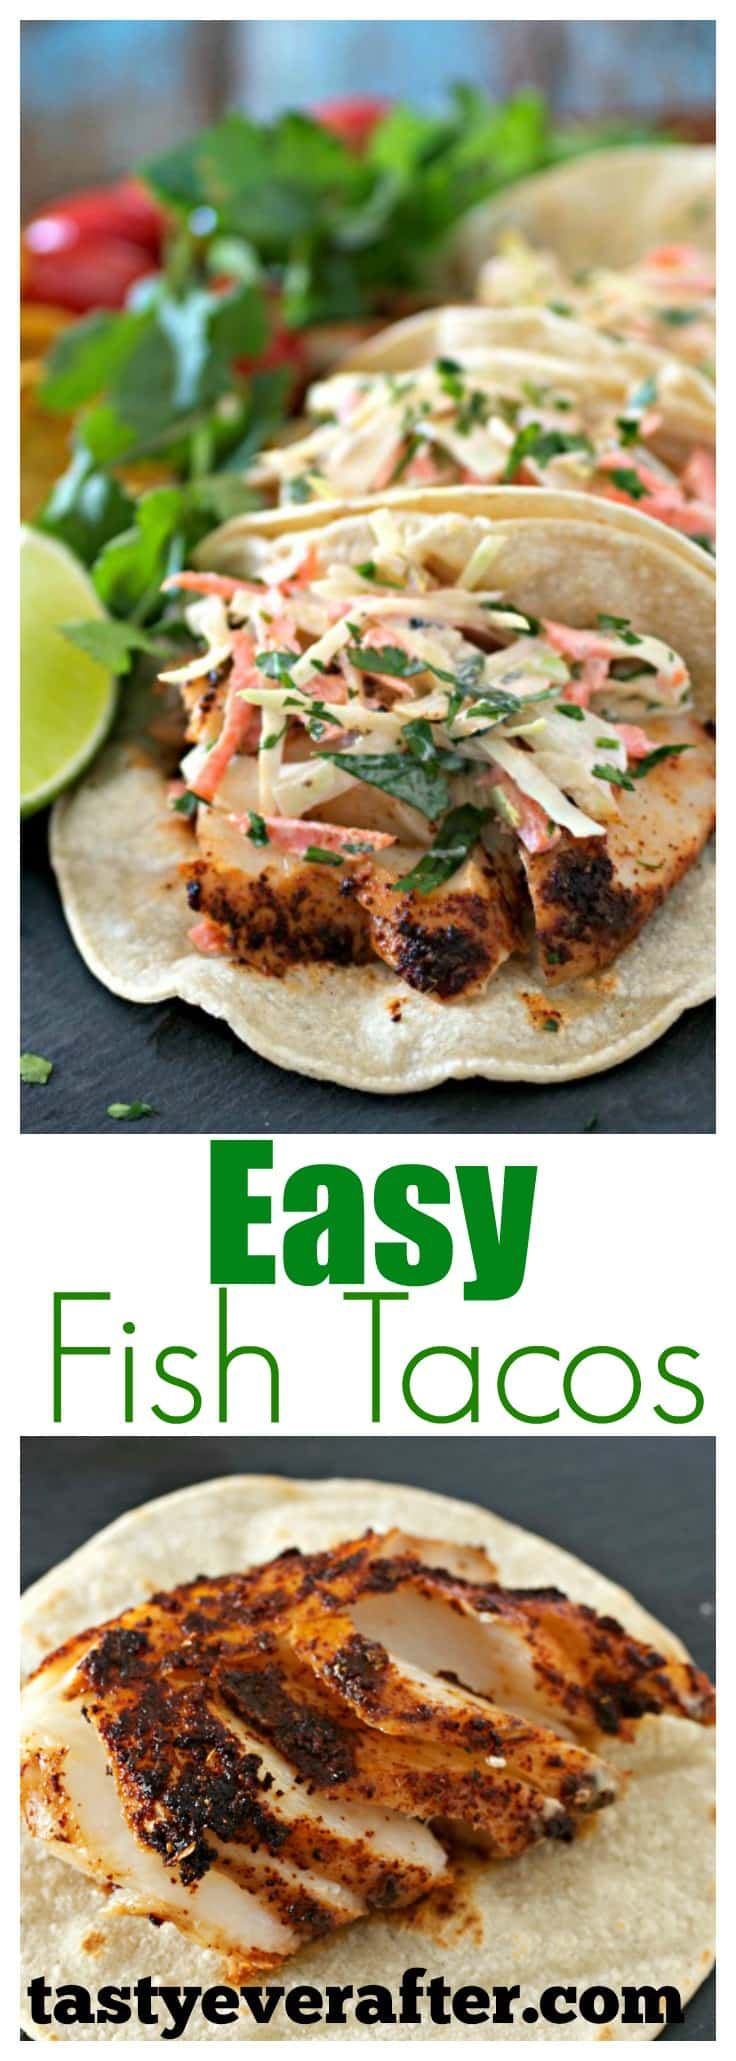 Easy fish tacos with spicy slaw tasty ever after for Fish tacos recipe easy